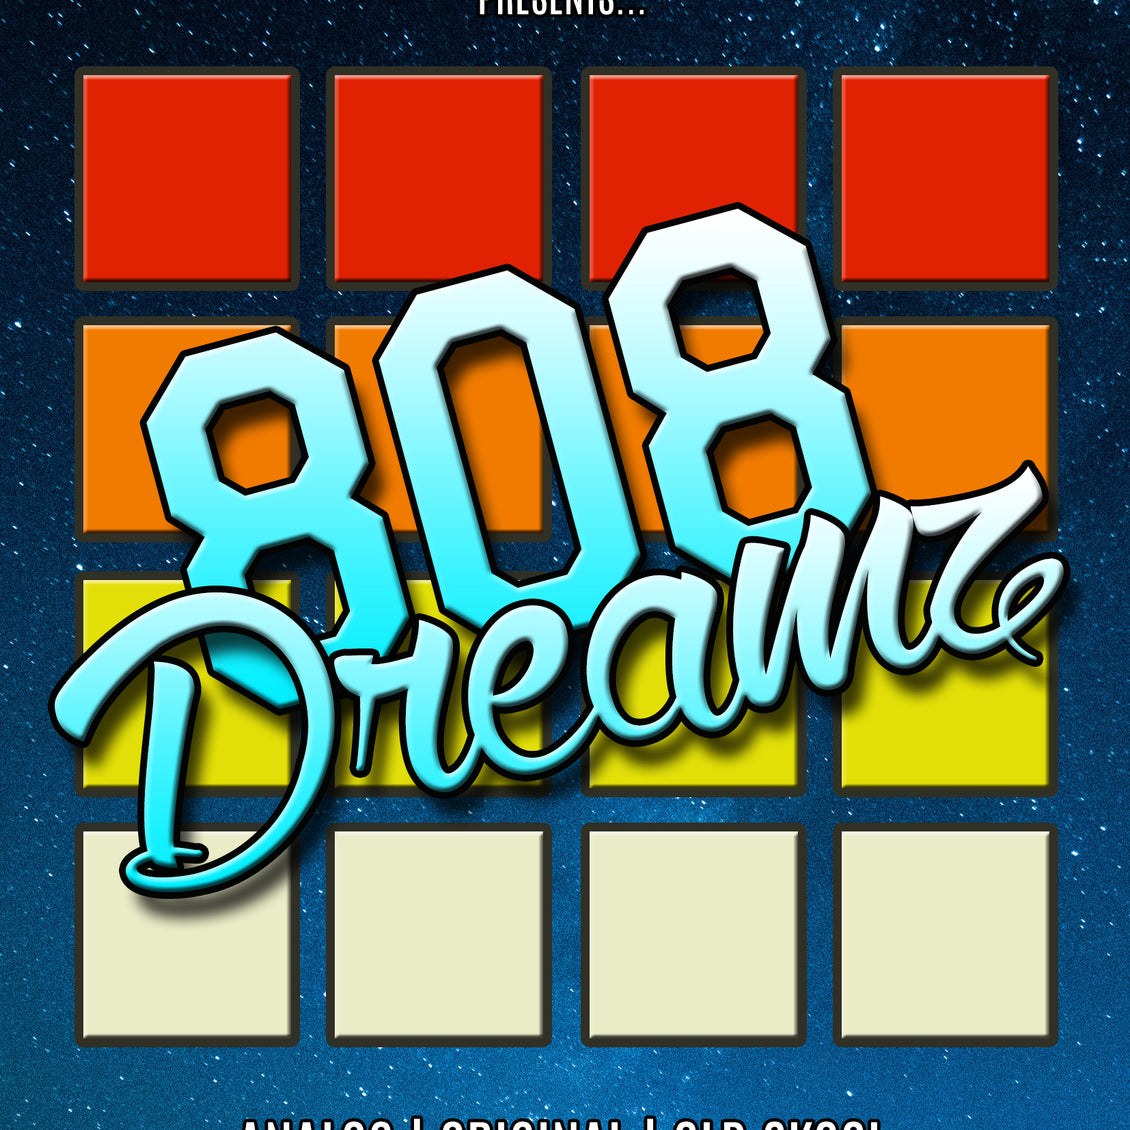 808 Dreamz is available now!